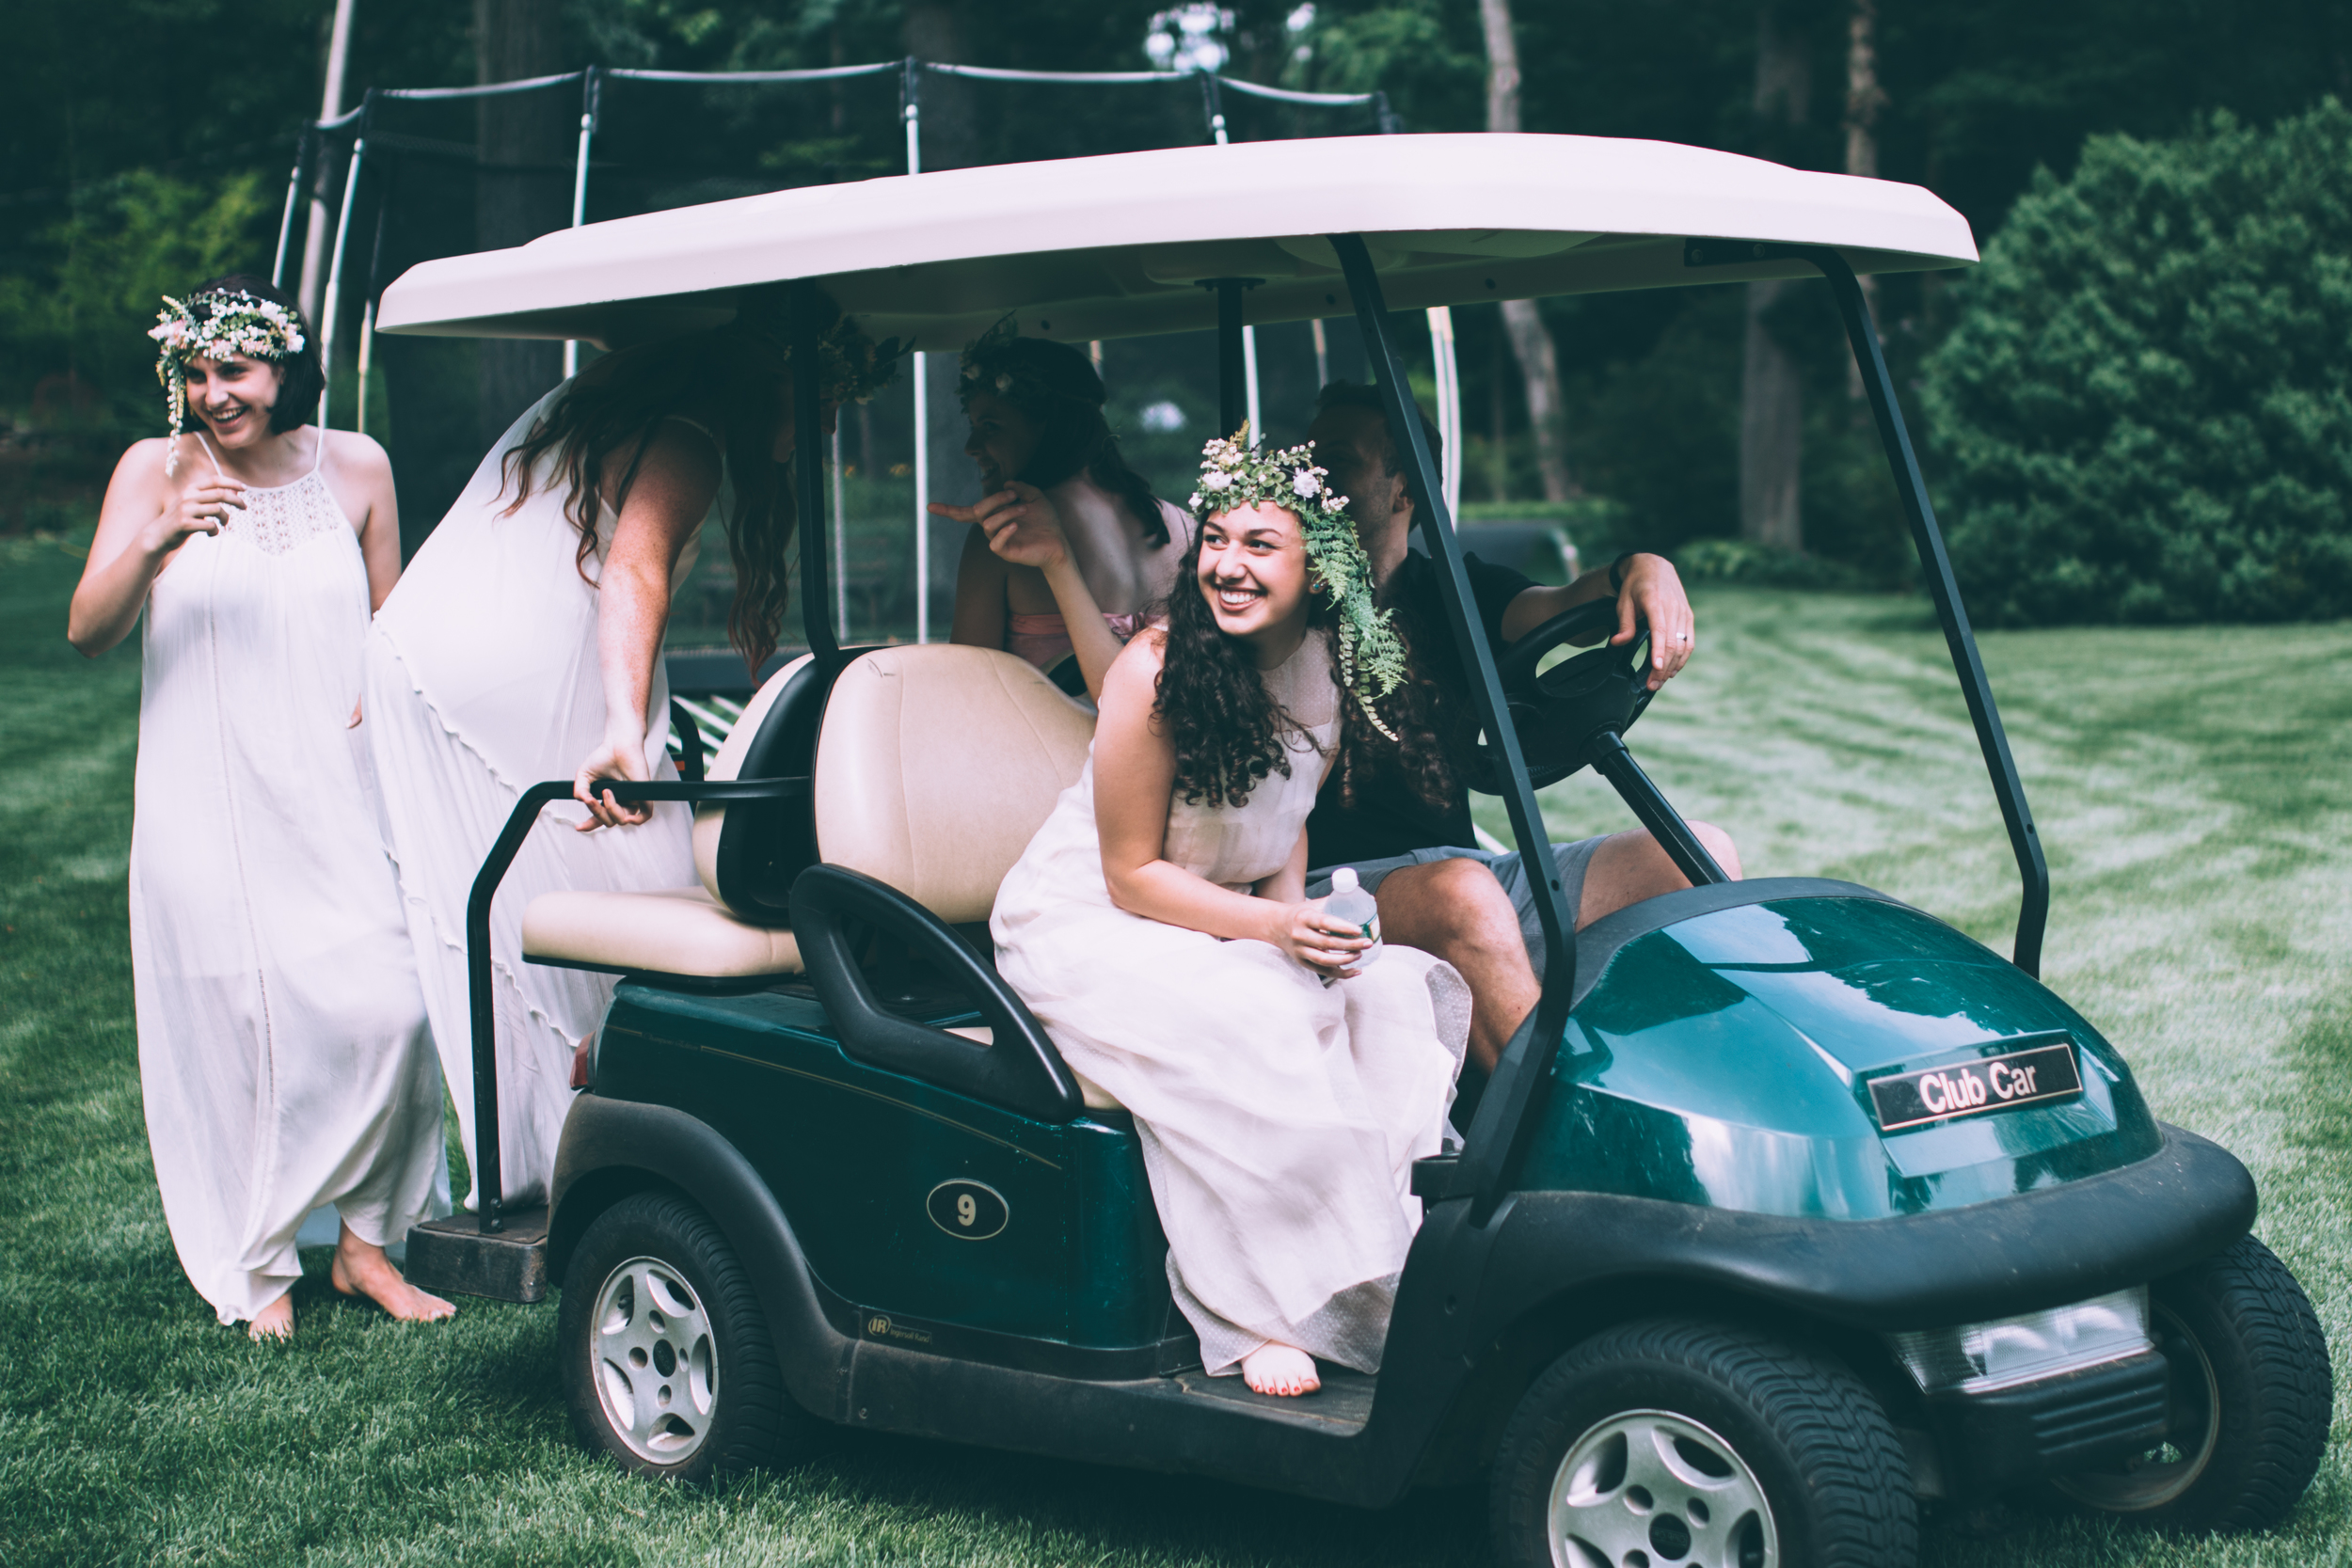 We traveled everywhere in Michael's golf carts